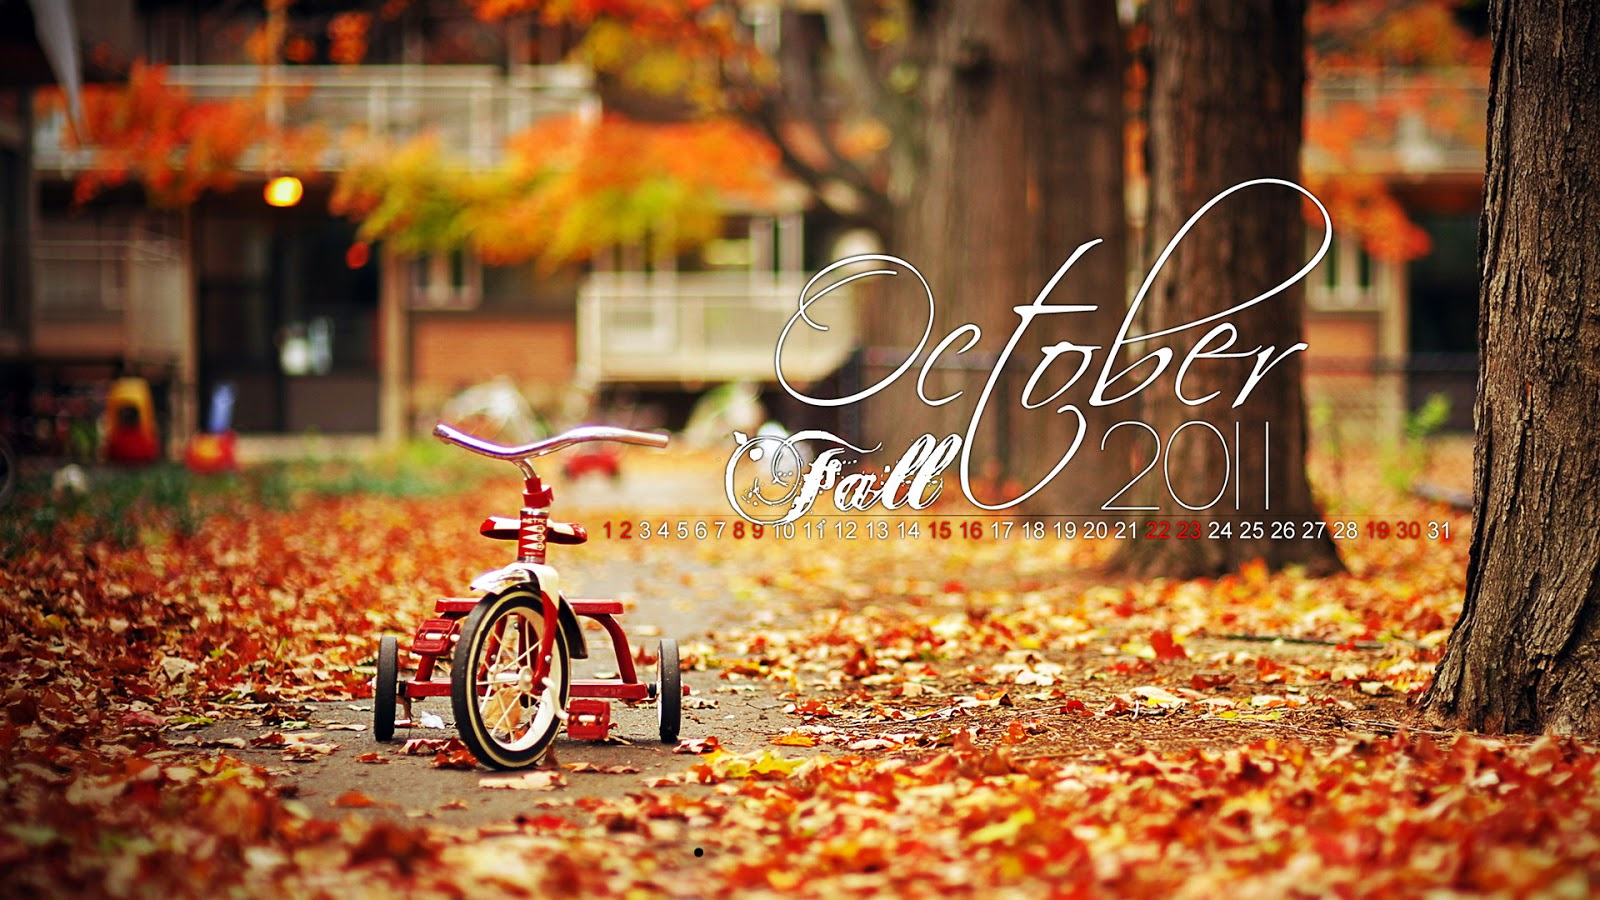 Welcome October Wallpaper Tumblr